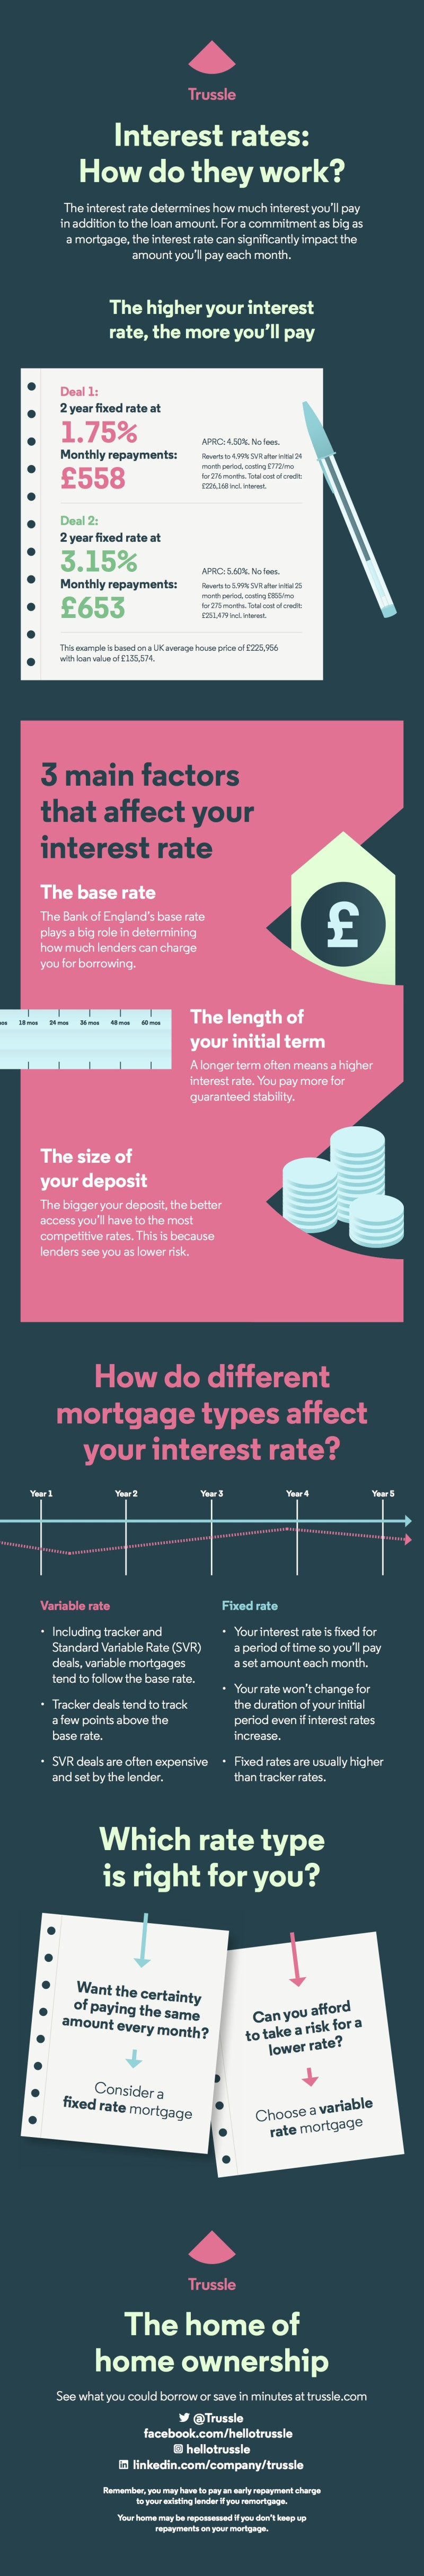 Interest Rates Info